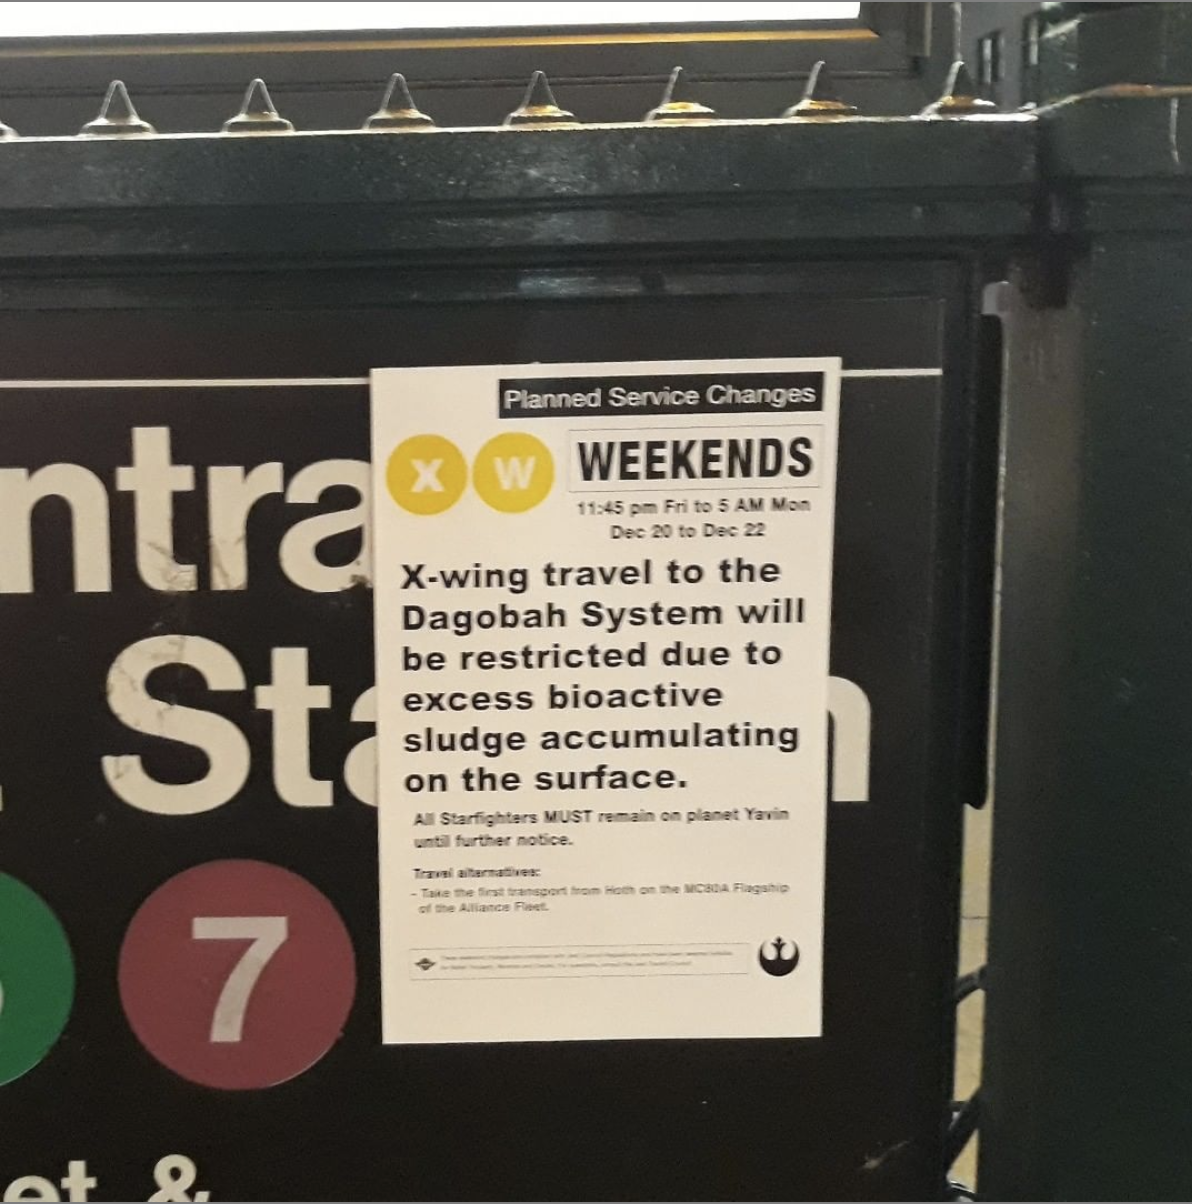 poster outside of an MTA subway station relating service changes to the Star Wars films